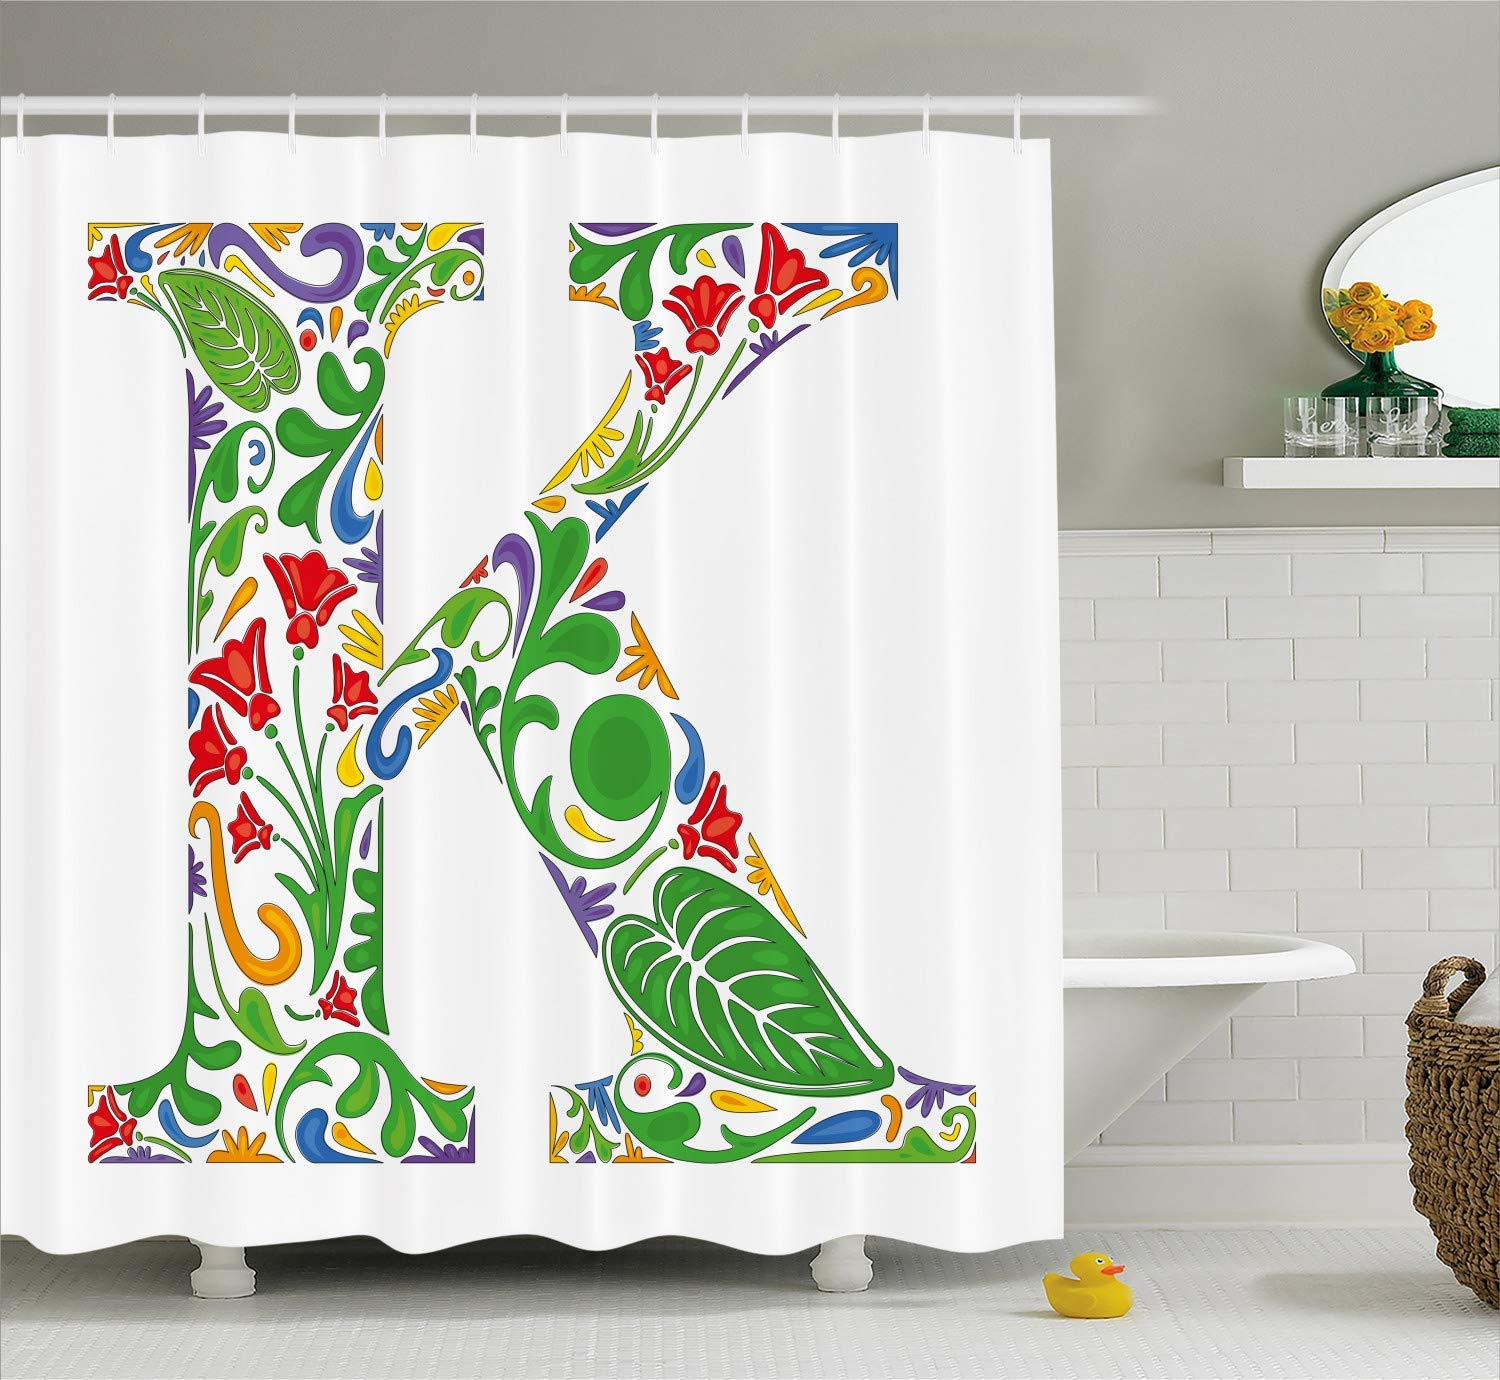 Custom Made Letter K Shower Curtain, Vivid Color Scheme Natural Inspirations Flowers Leaves Stalks Uppercase K Alphabet, Bathroom Fabric Curtains Bath Waterproof, 72 x 84 Inches White Green Orange